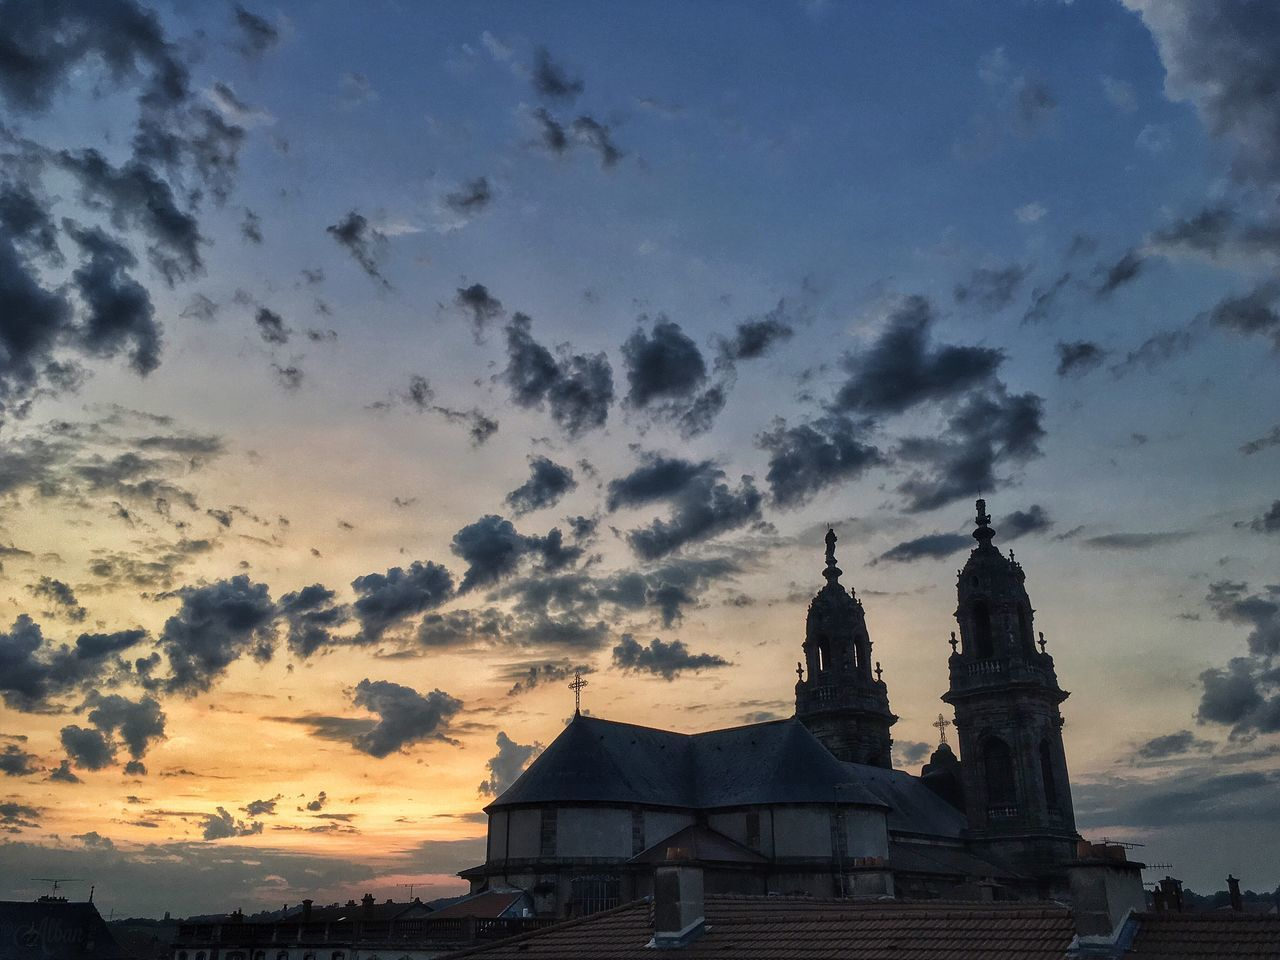 architecture, sunset, built structure, building exterior, sky, cloud - sky, no people, outdoors, spirituality, place of worship, nature, beauty in nature, day